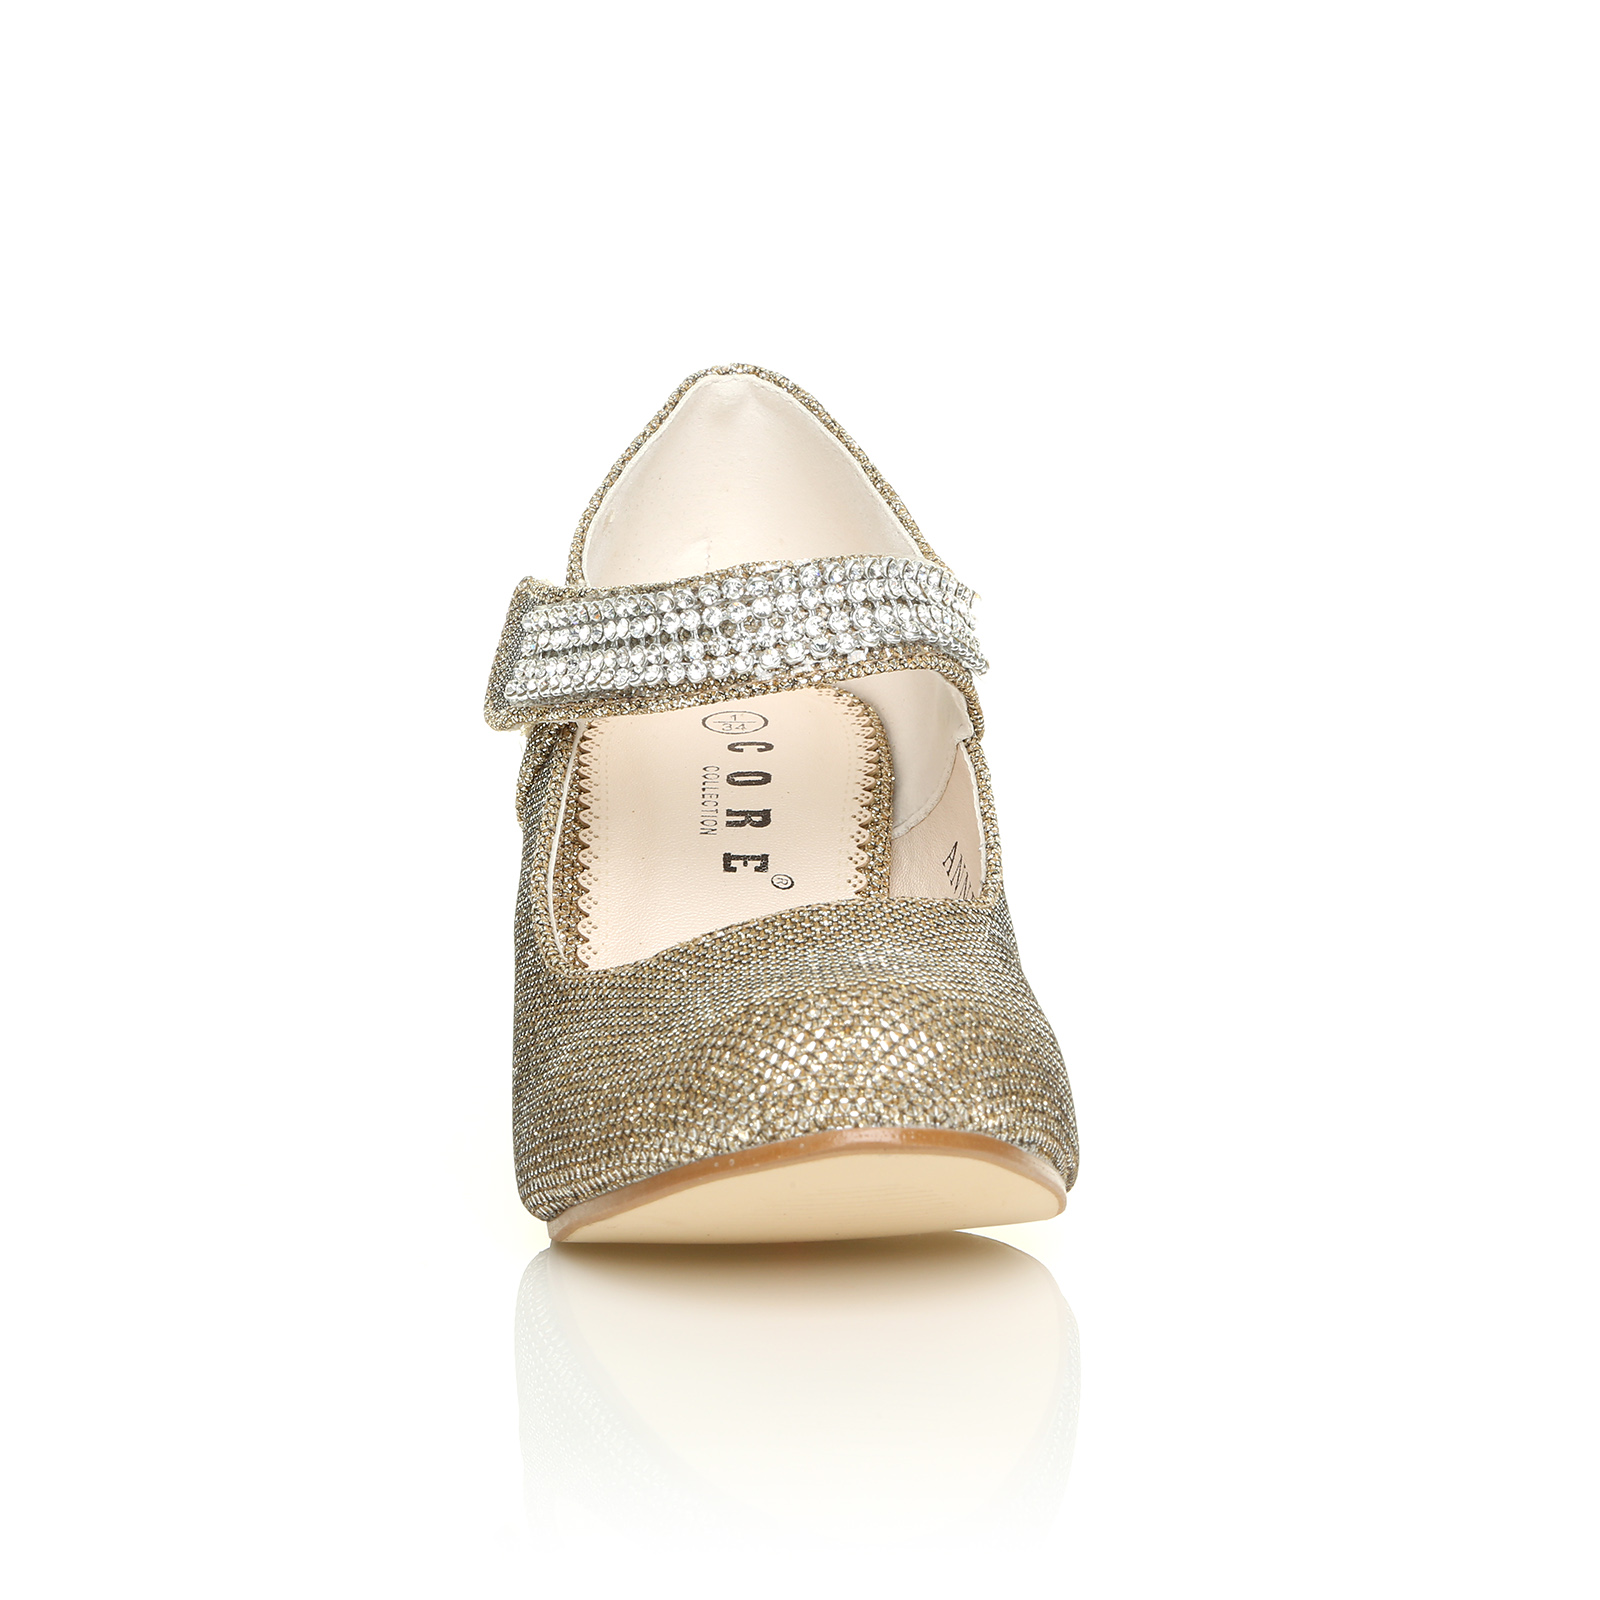 GIRLS-KIDS-CHILDRENS-LOW-HEEL-PARTY-WEDDING-DIAMANTE-STYLE-SANDALS-SHOES-SIZE